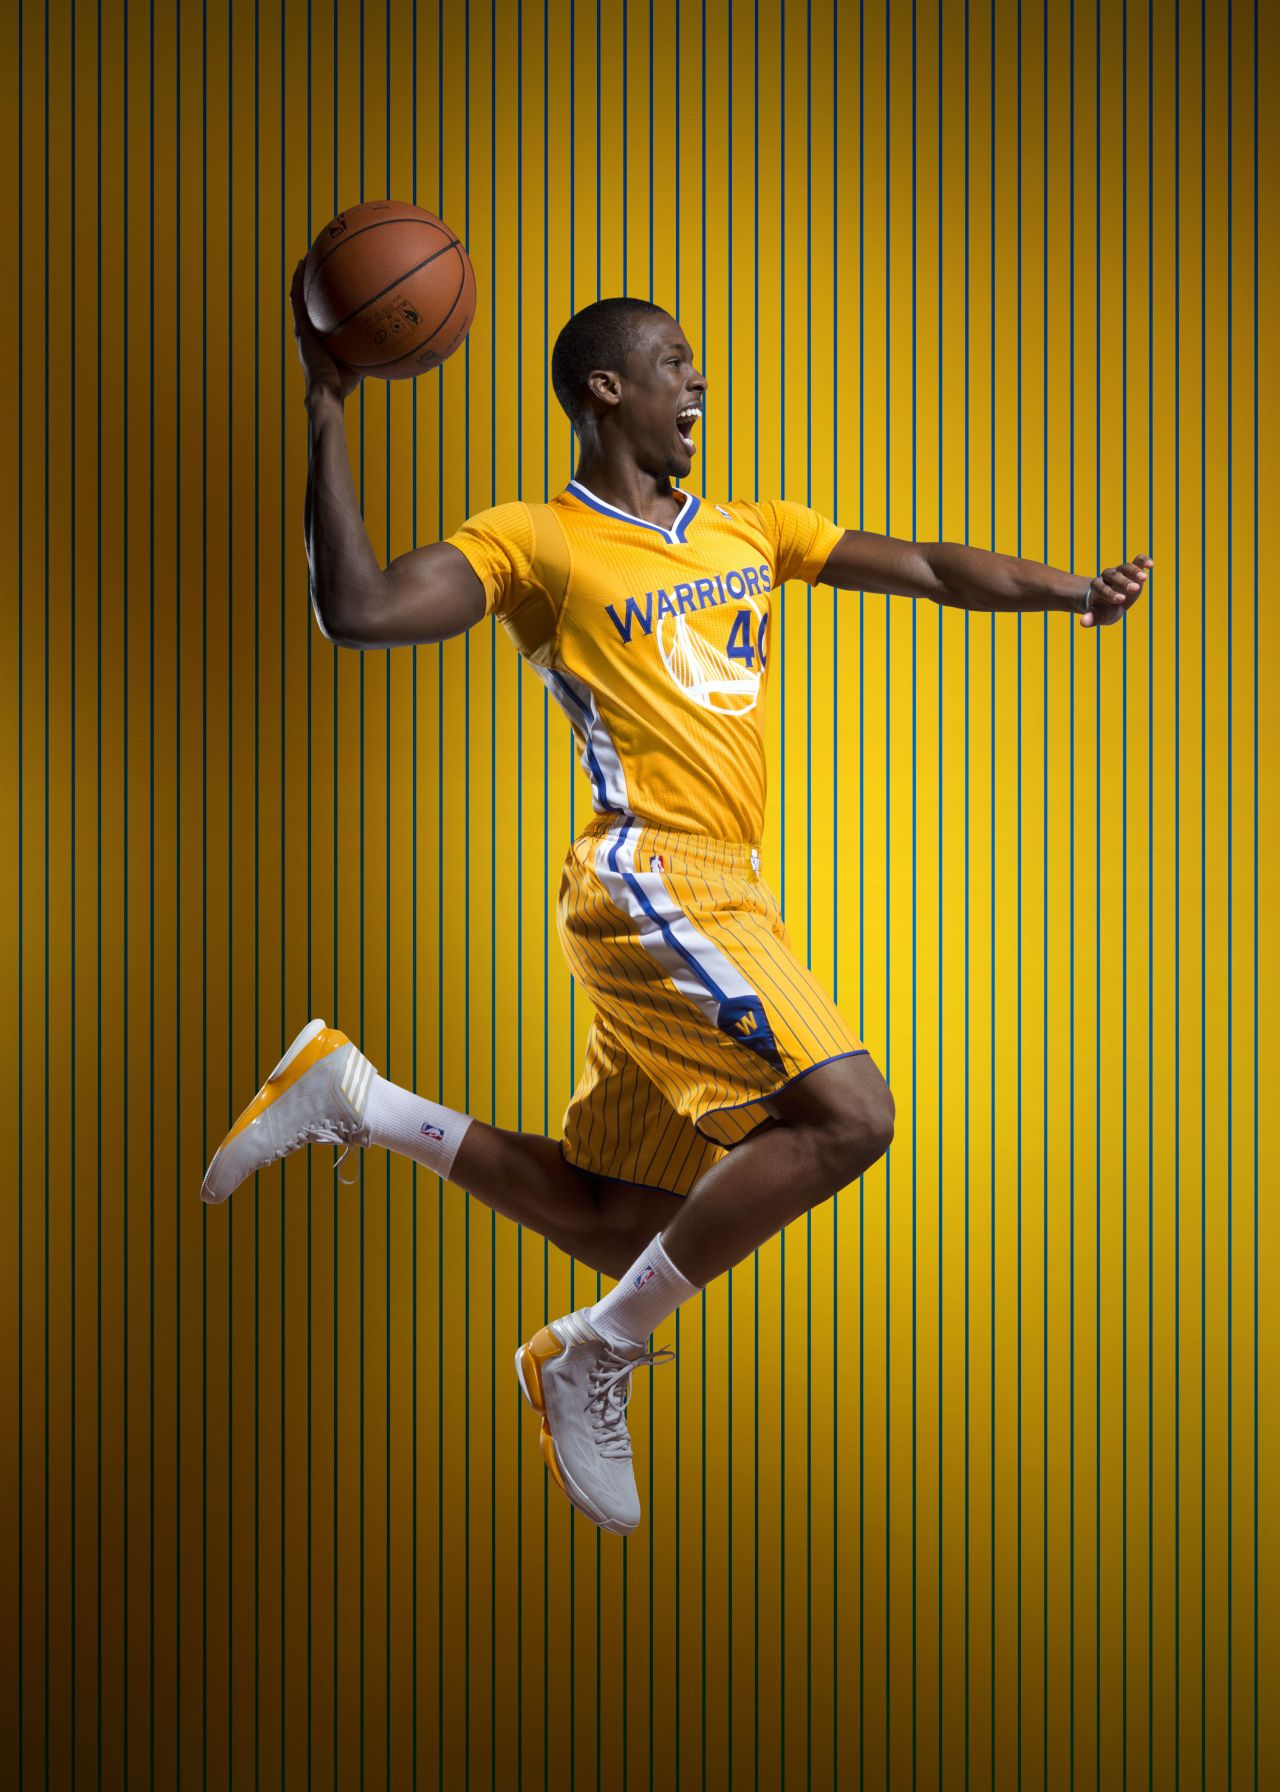 "Here's Harrison Barnes of the Golden State Warriors modeling the team's new alternate jersey - with sleeves! This is another questionable ambitious Adidas design, after this year's special Christmas uniforms. The material is supposed to be 25% lighter, but the combination of t-shirt top and pinstriped shorts gives the whole ensemble a real ""laundry day"" look. Perhaps this new uniform is designed to appeal to 2013 free agent Dwight Howard, who loves sleeves of all kinds, and might take the court with a full Spandex cat burglar outfit under his jersey by the end of the year. Or, it will be a nice transition for undershirt-loving college kids on their way to the NBA. Patrick Ewing would have loved this jersey, and the added sweat absorption might have changed the course of his entire career."